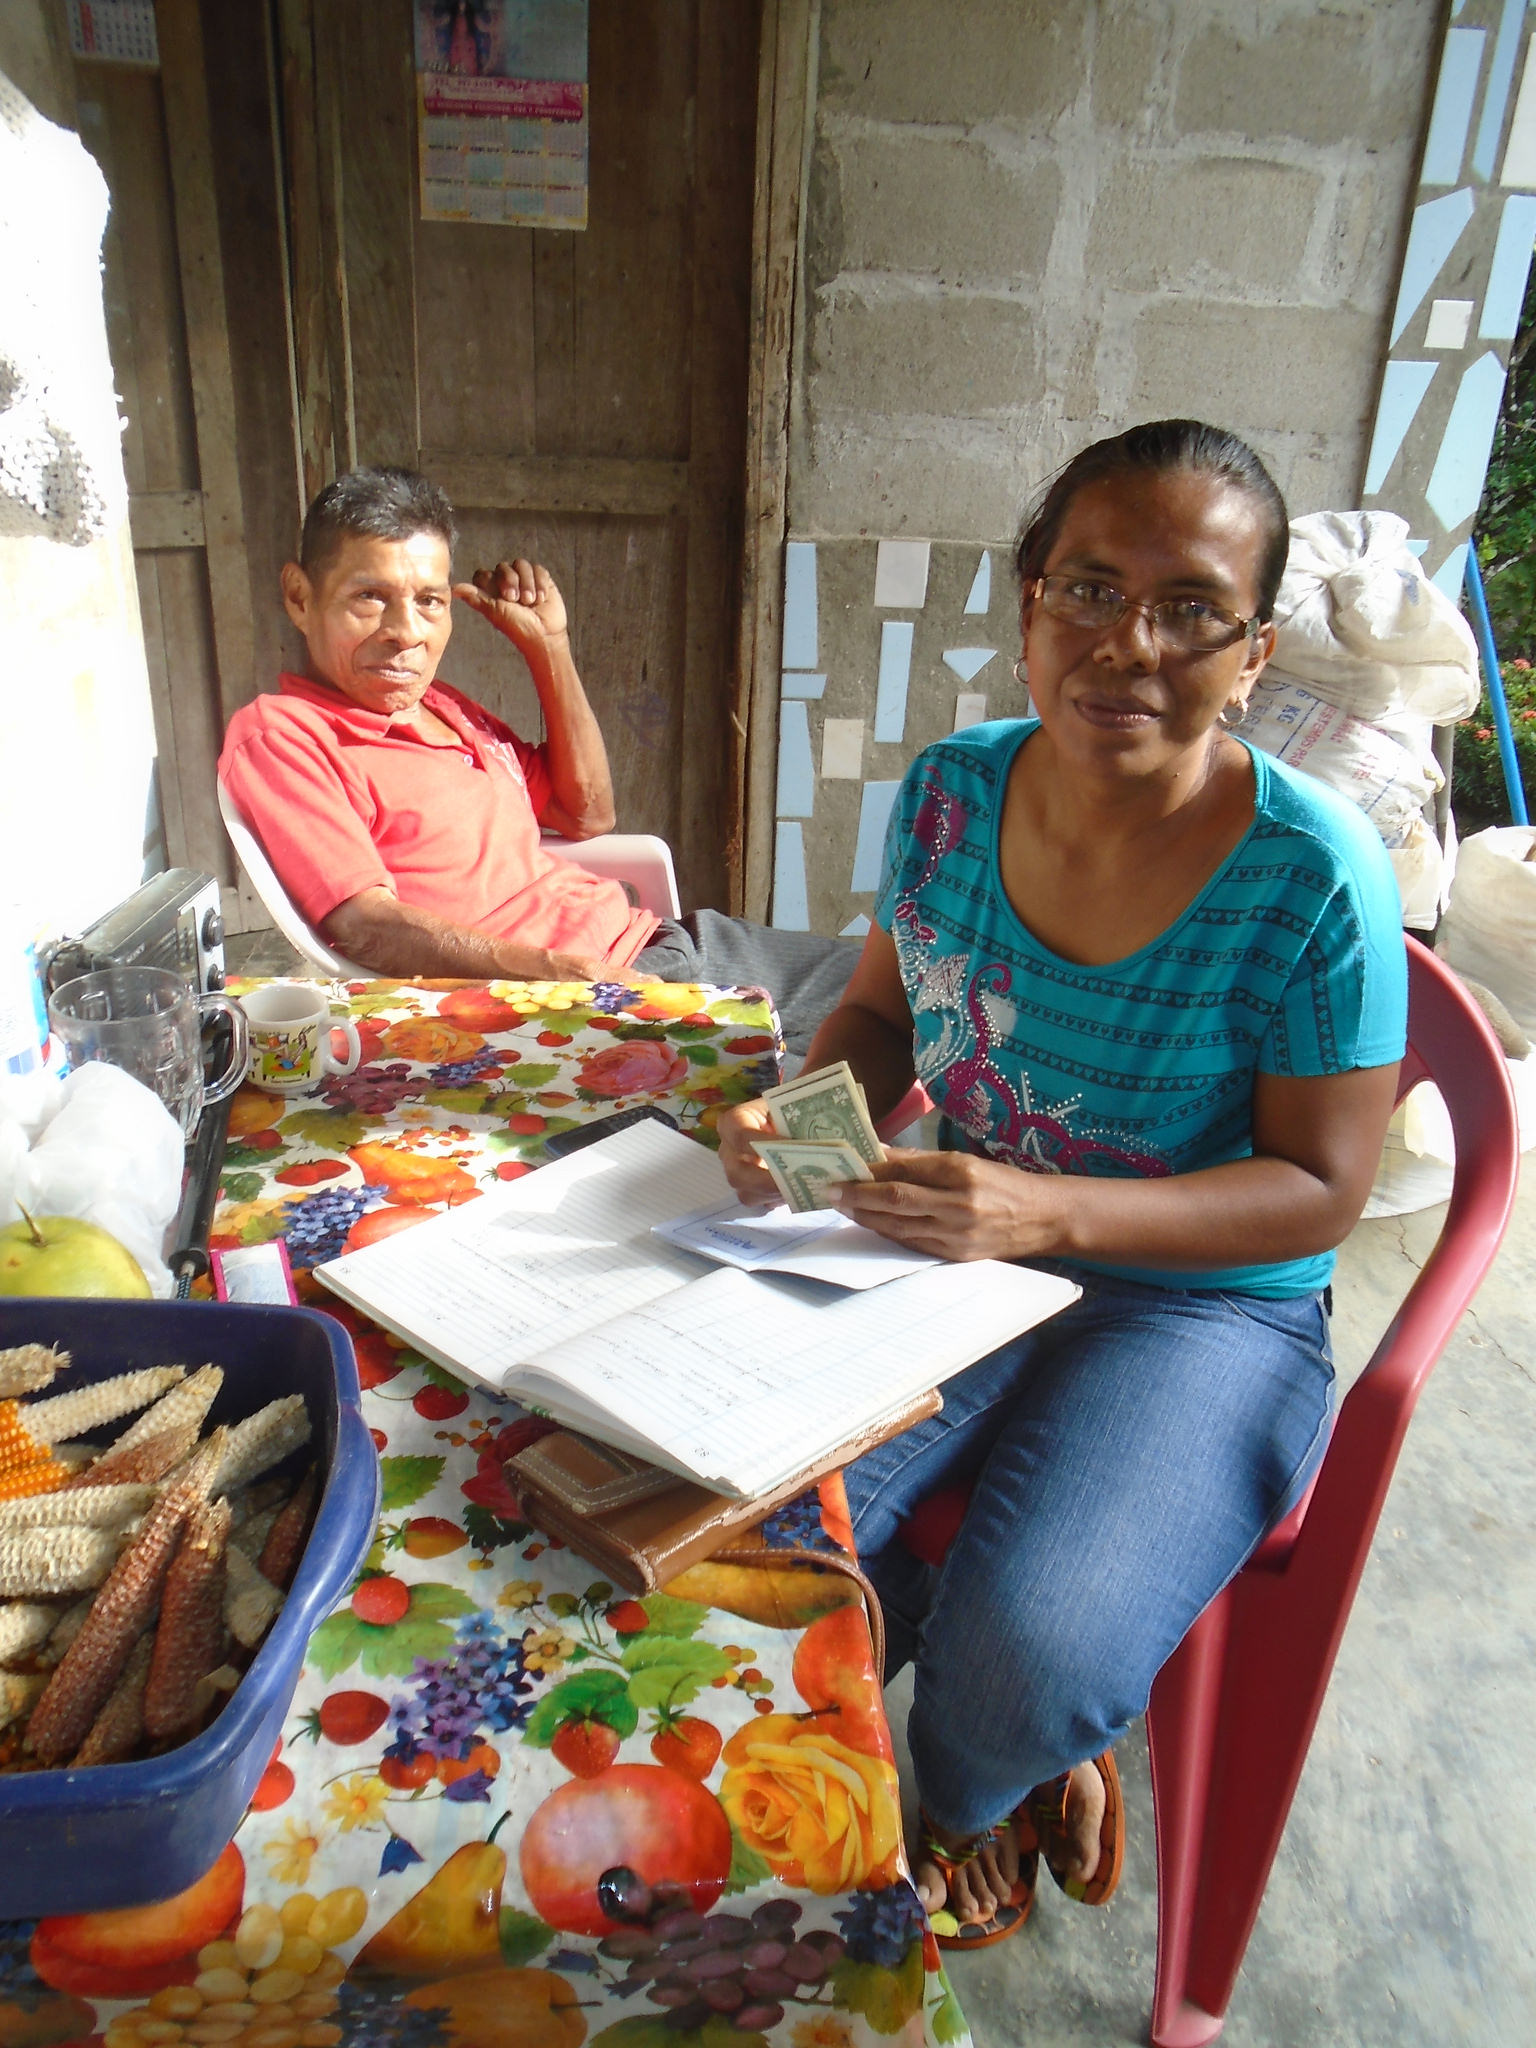 Nancy keeps meticulous notes to track the bank's loans. - photo by Dayra Julio